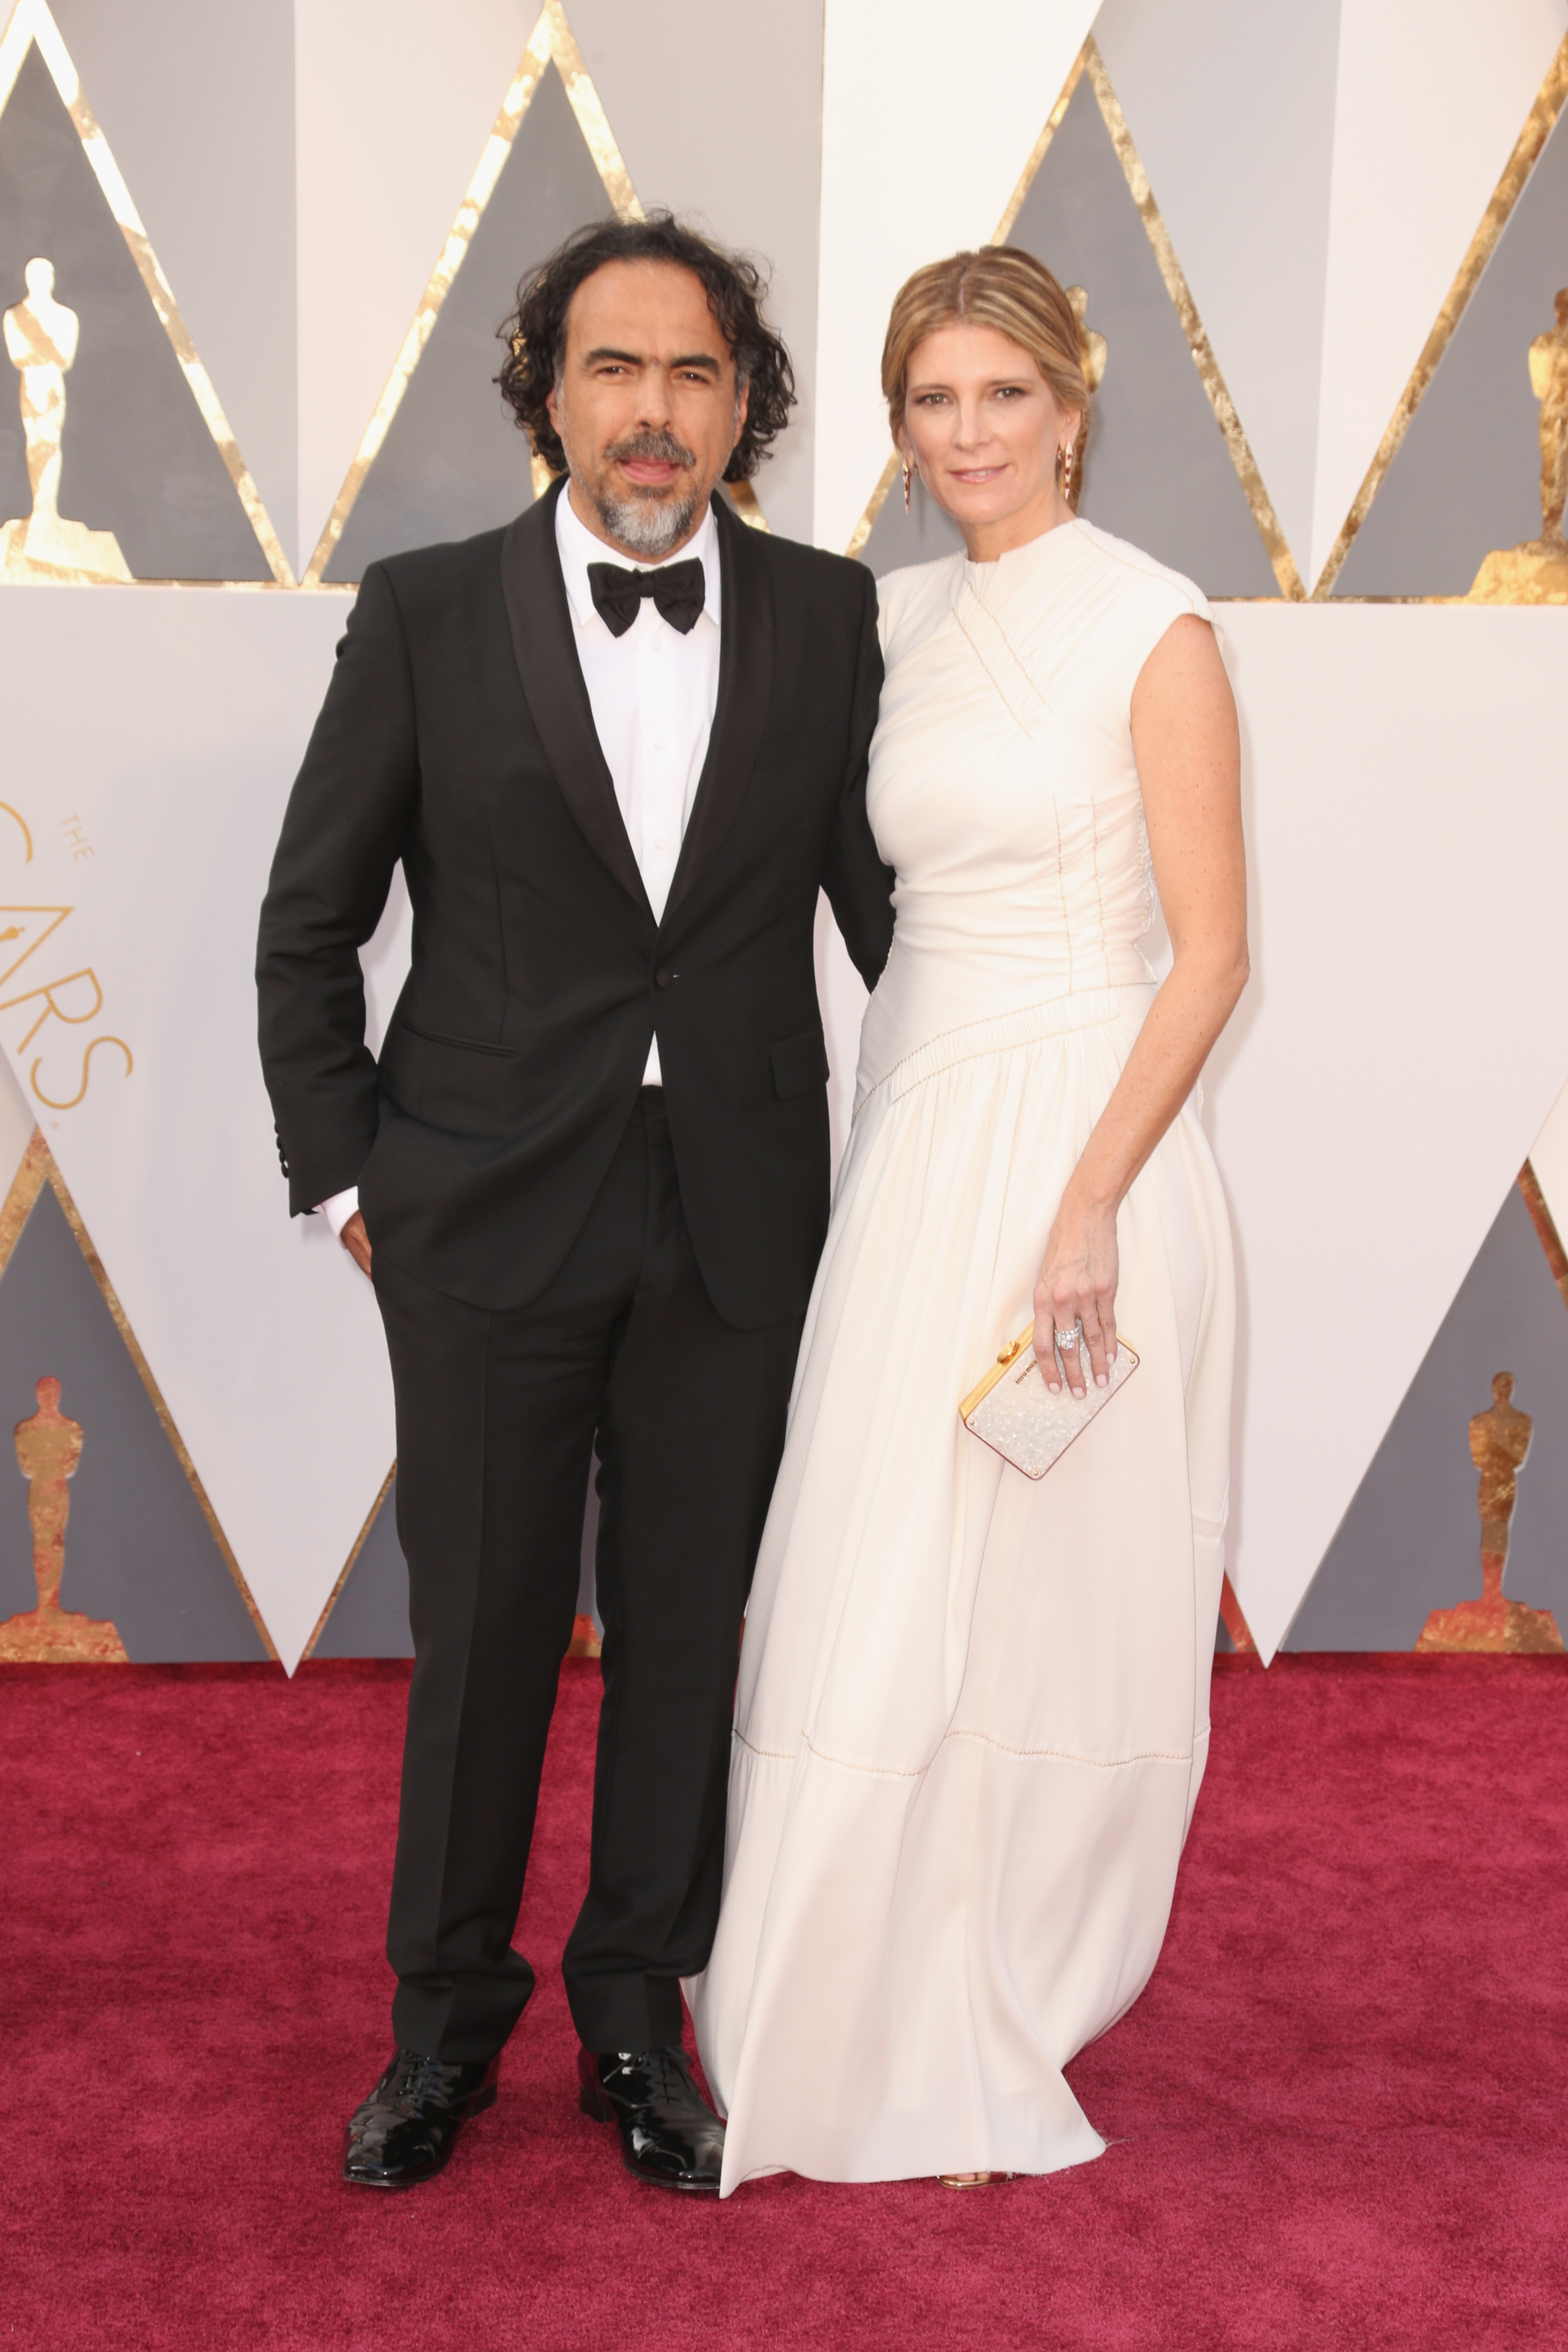 Alejandro Iñárritu and Maria Eladia Hagerman attend the 88th Annual Academy Awards on Feb. 28, 2016 in Hollywood, Calif.